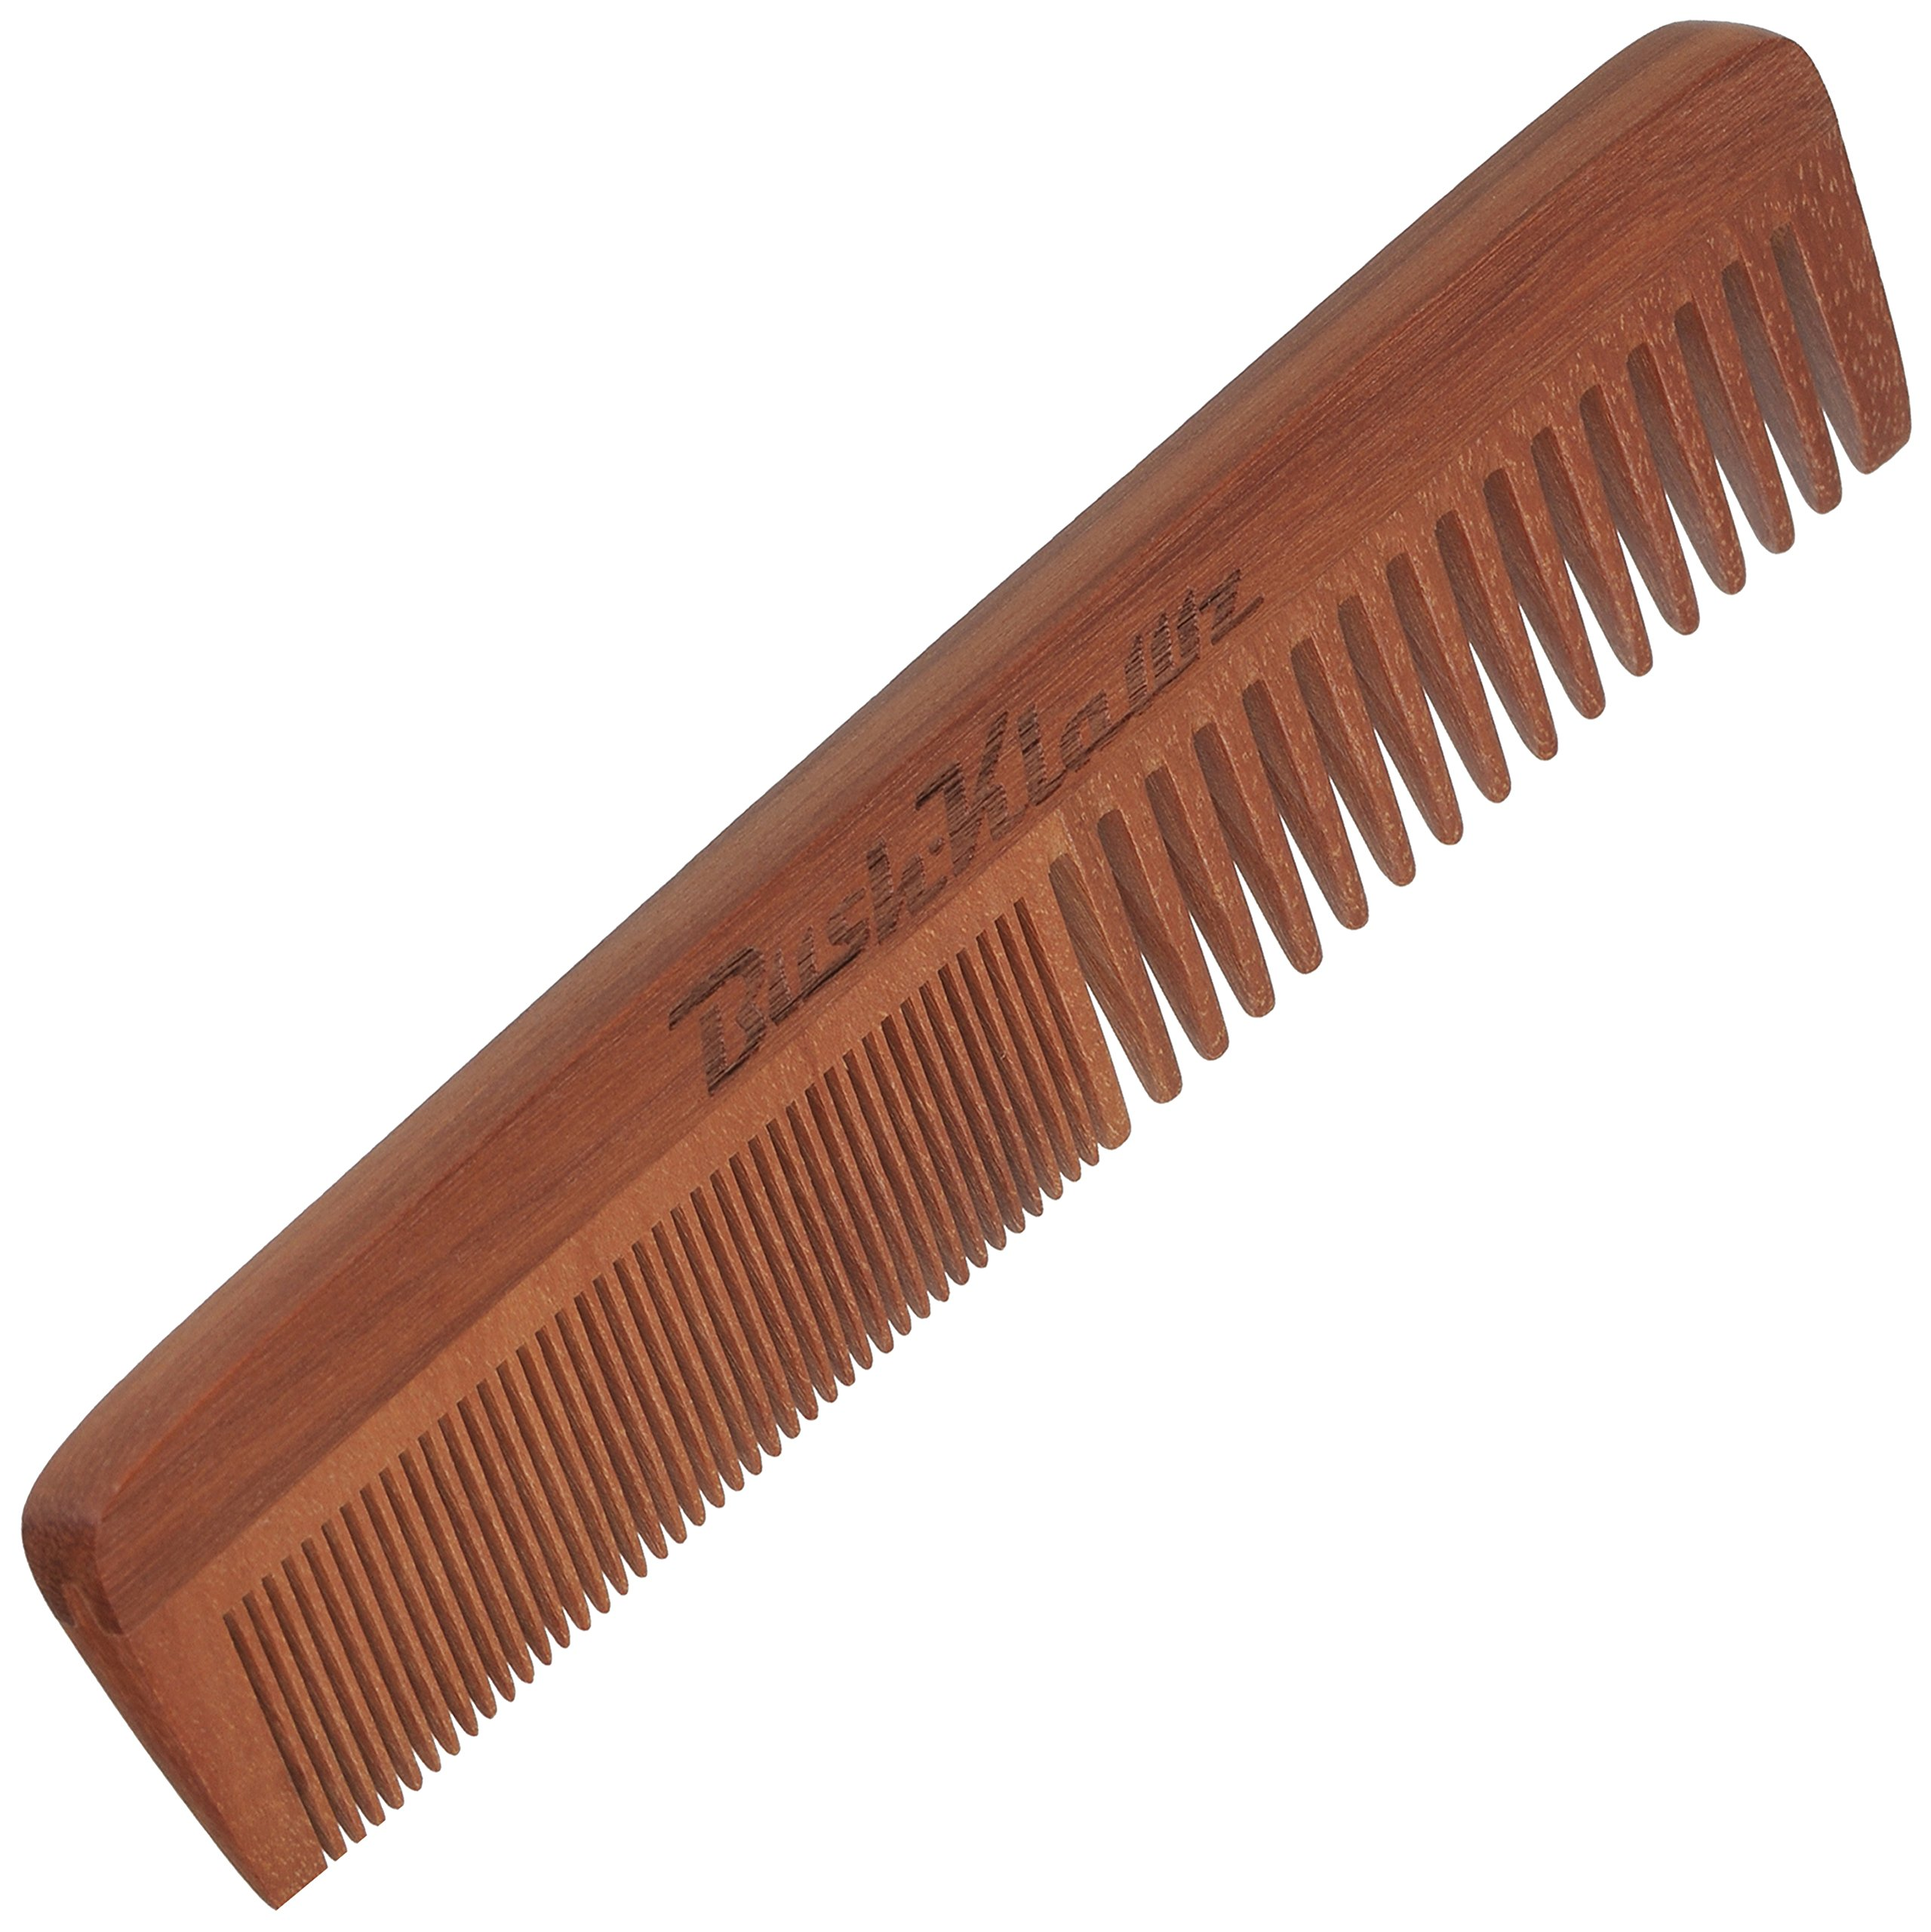 2Klawz Hair Comb for Men - Hair and Beard Comb with Wide and Fine Teeth Full Size 7'' Combination Comb - Best Man Comb Grooming Gift Special Gift For Mens comb Clark Kent Comb by BushKlawz (Image #2)